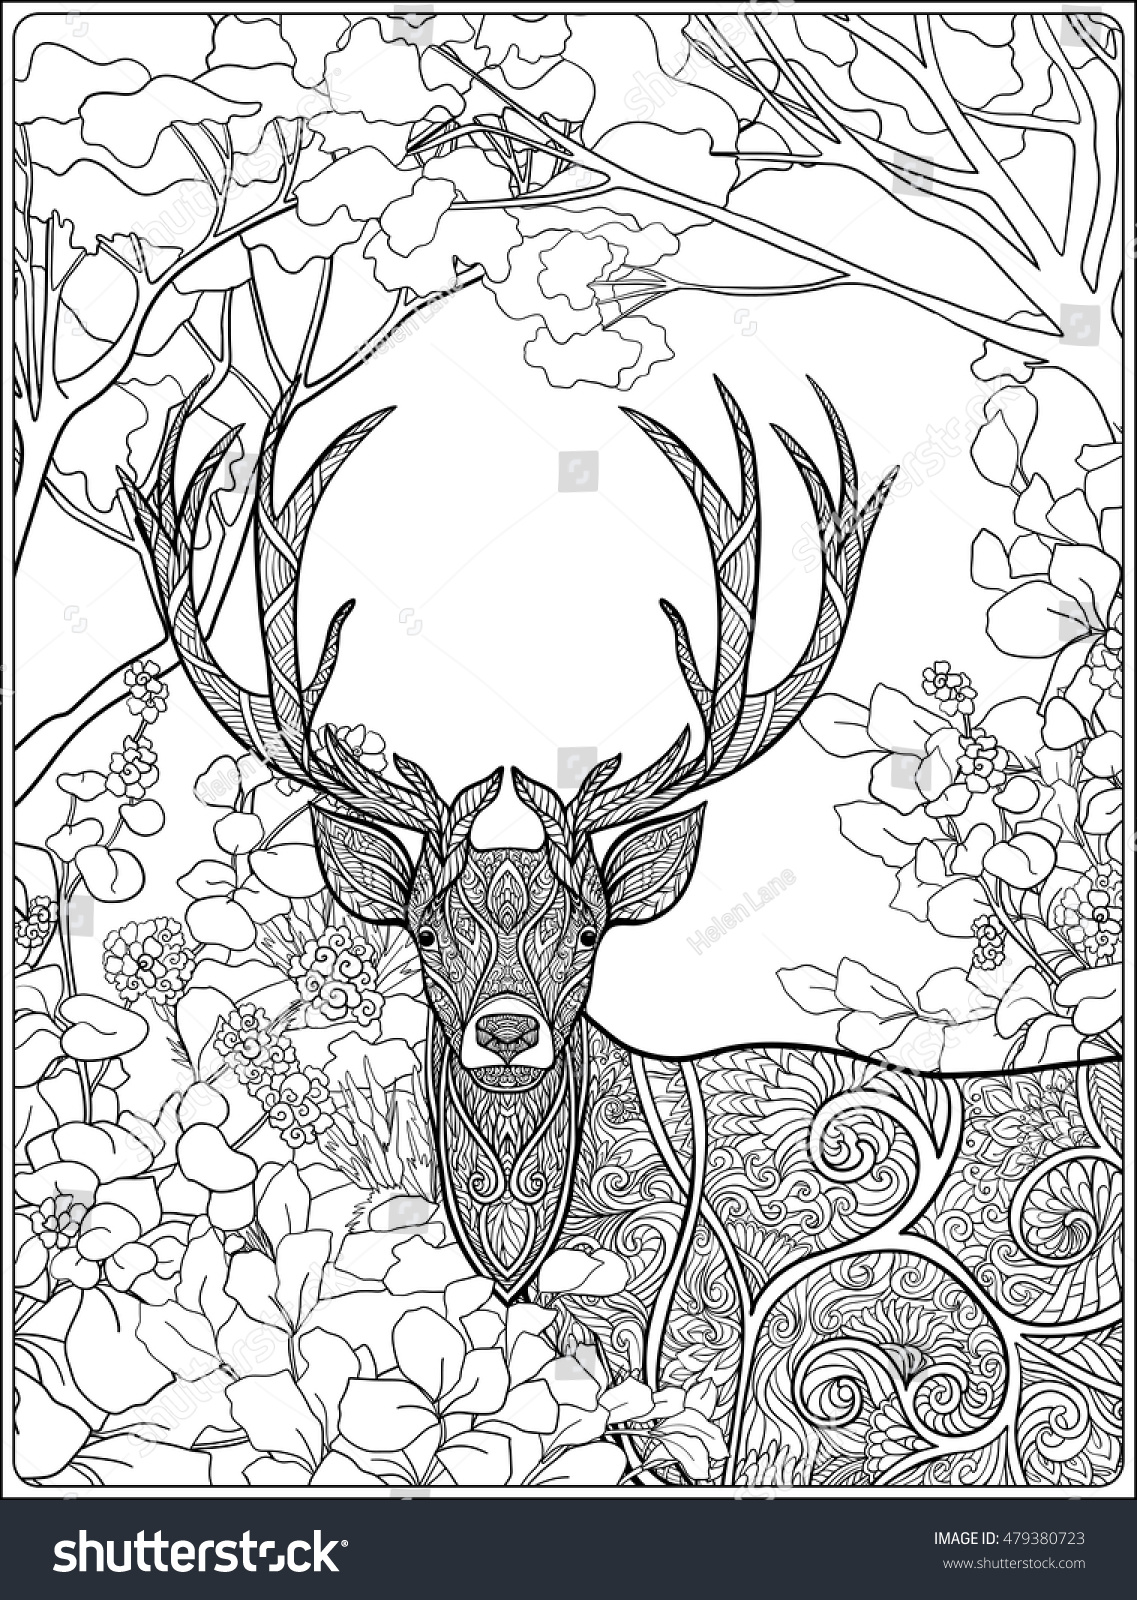 Coloring Page Deer Forest Coloring Book Stock Photo (Photo, Vector ...